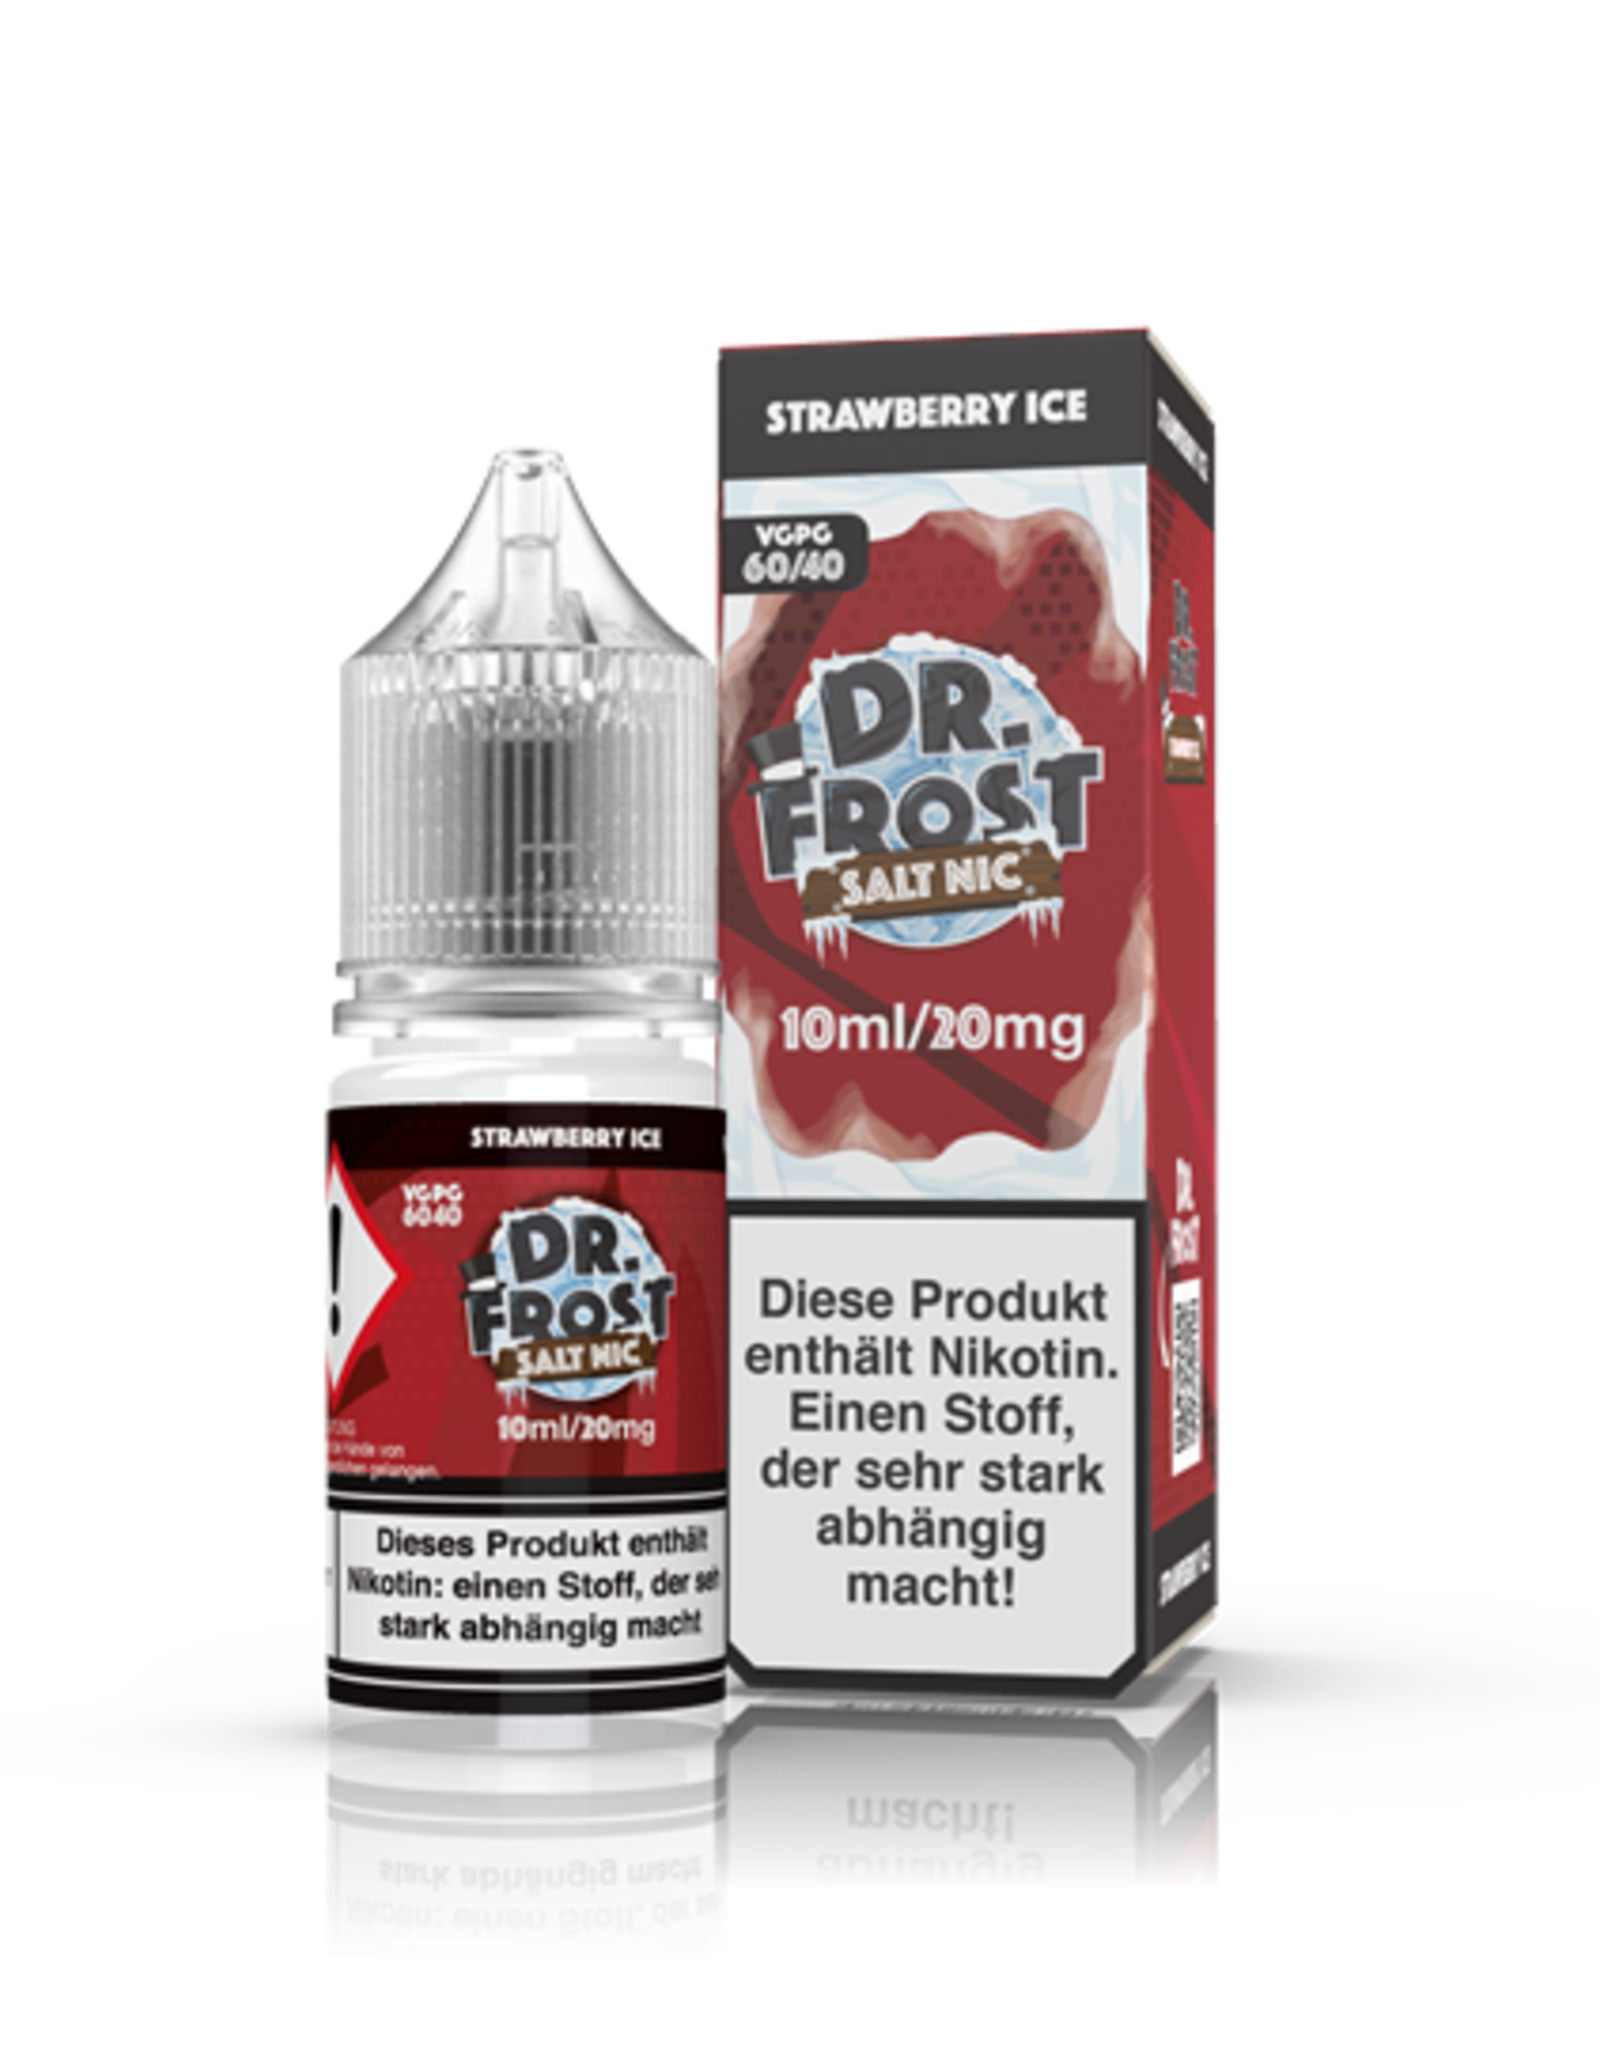 Dr. Frost Dr. Frost - Strawberry Ice 10ml 20mg